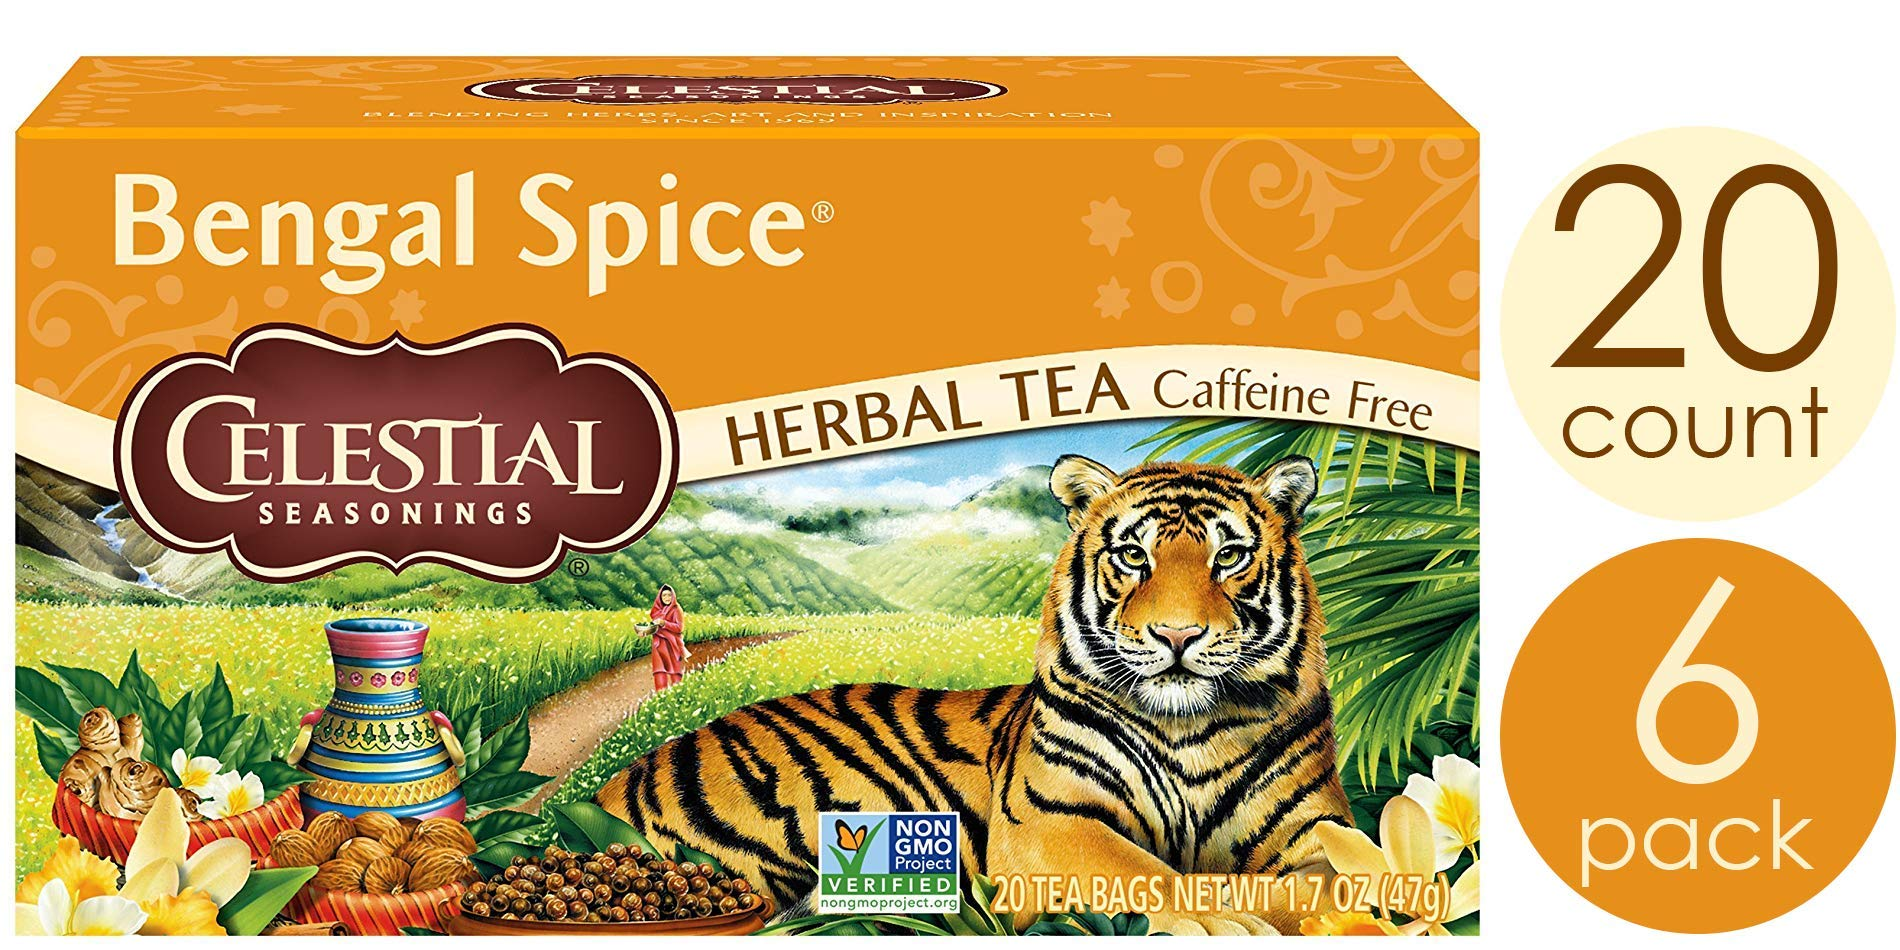 Celestial Seasonings Herbal Tea, Bengal Spice, 20 Count (Pack of 6) by Celestial Seasonings